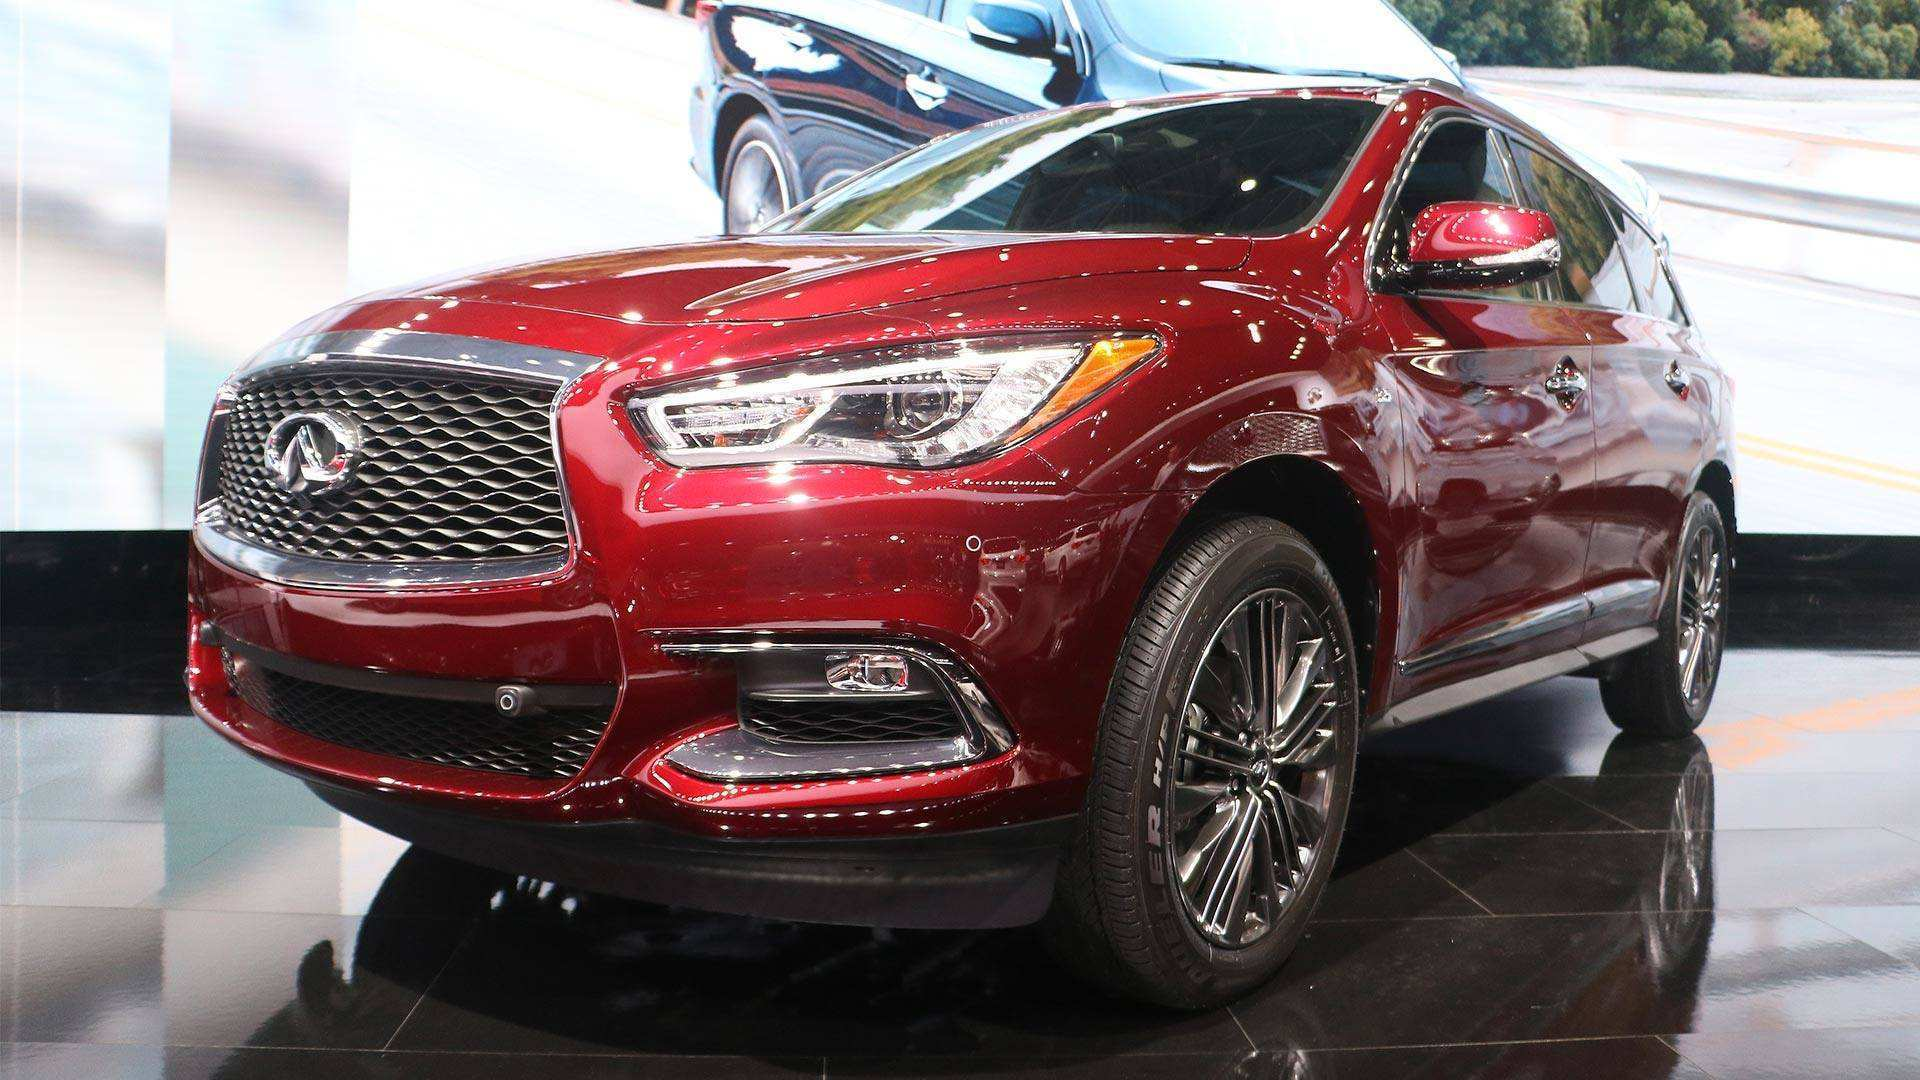 97 The Best 2019 Infiniti QX60 Hybrid New Model And Performance